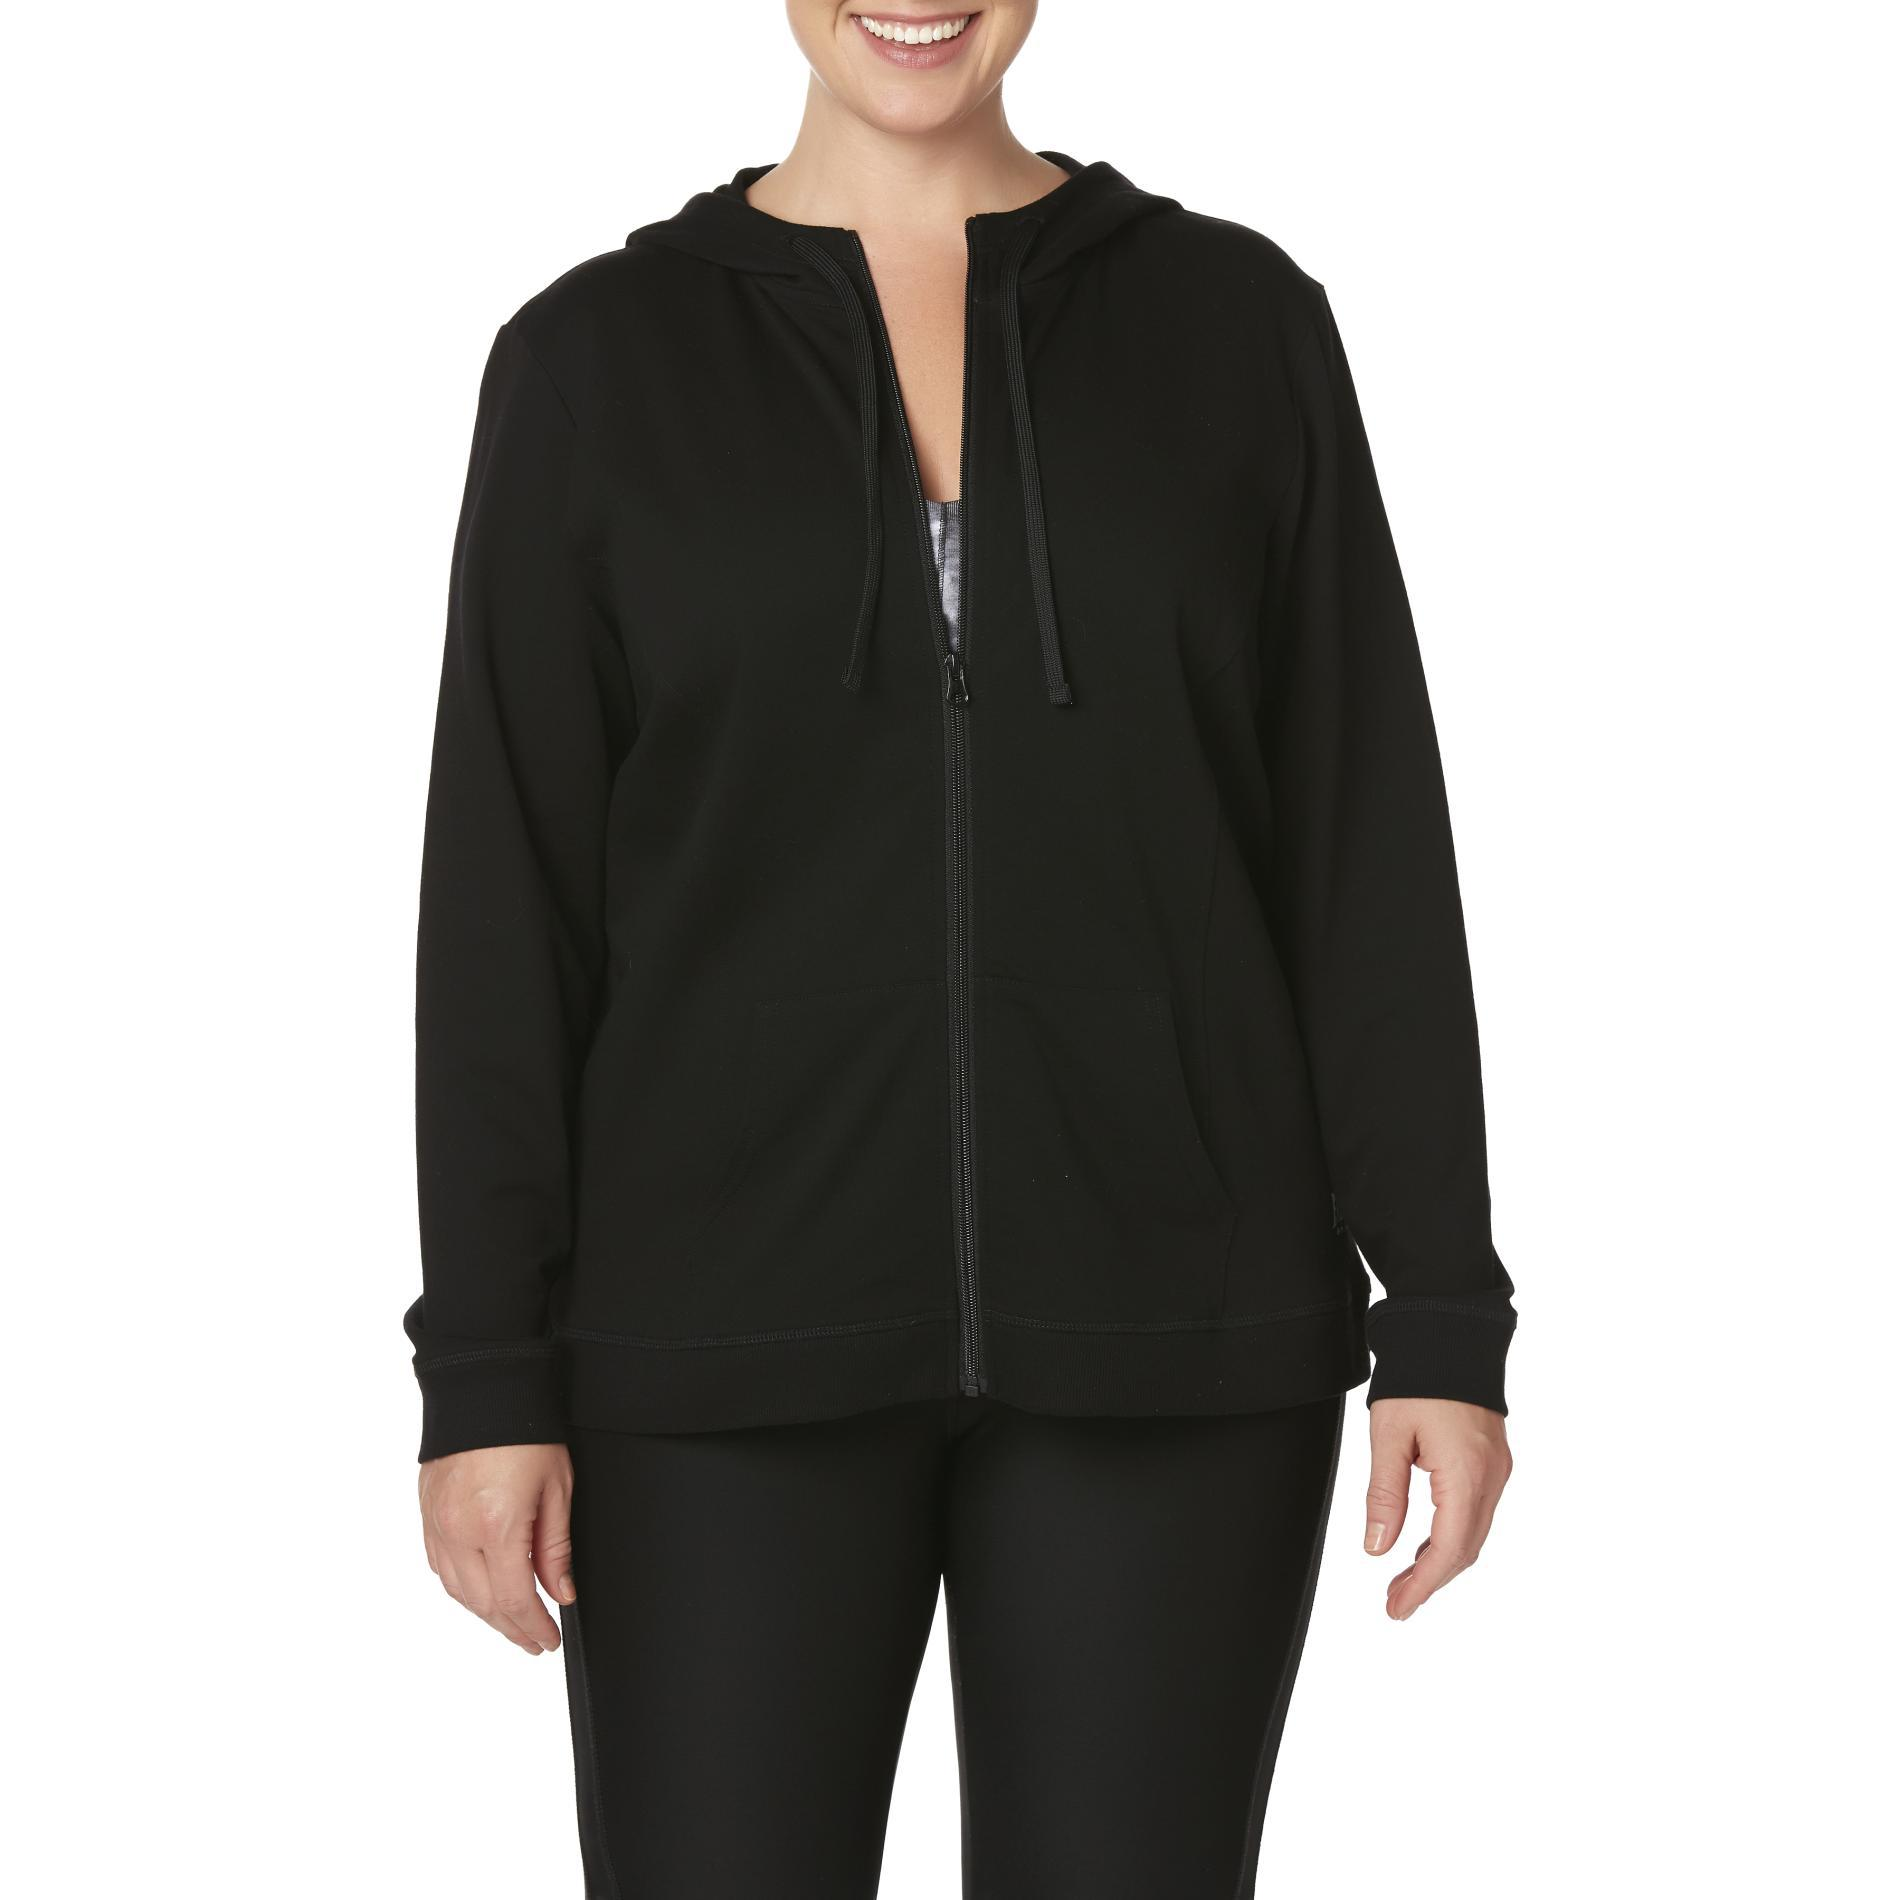 Everlast® Sport Women's Plus French Terry Knit Hoodie Jacket